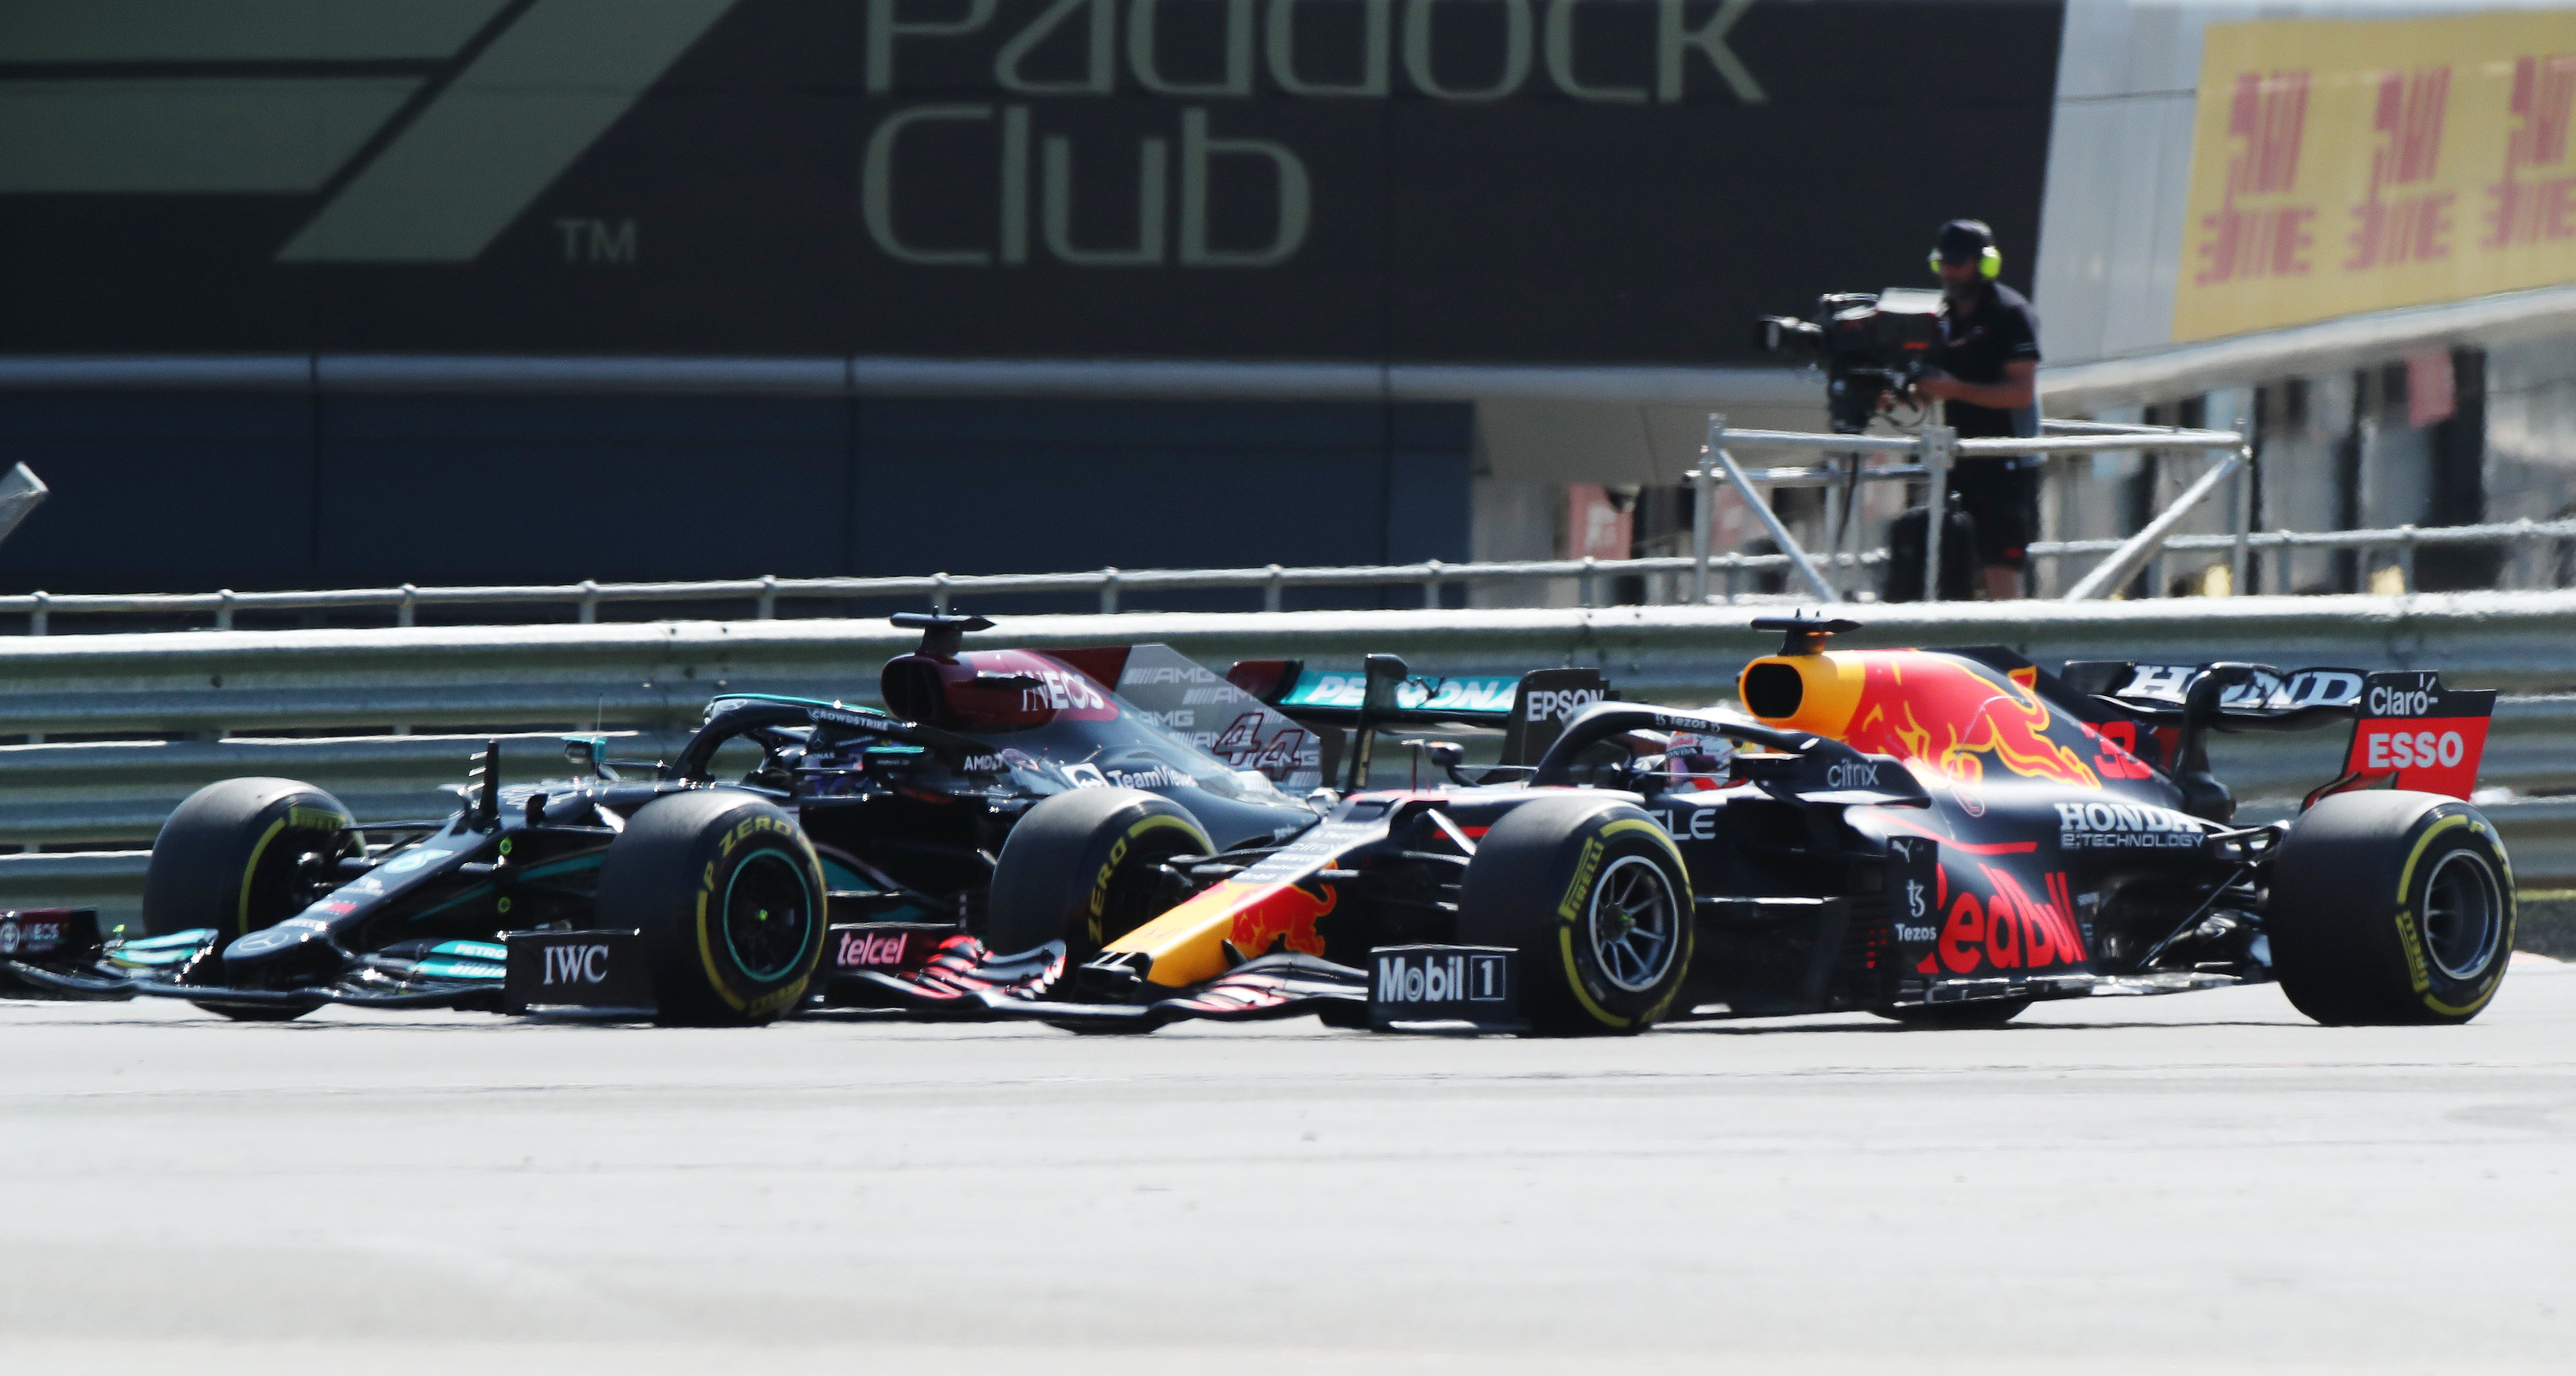 Formula One F1 - British Grand Prix - Silverstone Circuit, Silverstone, Britain - July 18, 2021 Mercedes' Lewis Hamilton and Red Bull's Max Verstappen during the race REUTERS/Peter Cziborra/File Photo